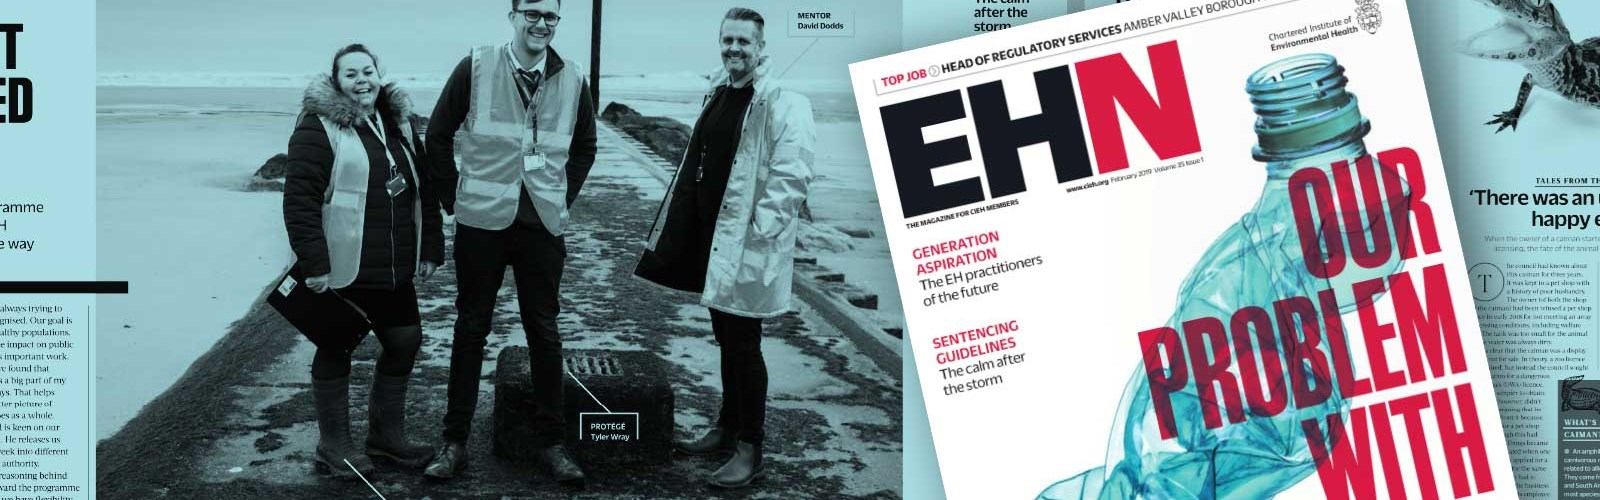 Cover of EHN magazine